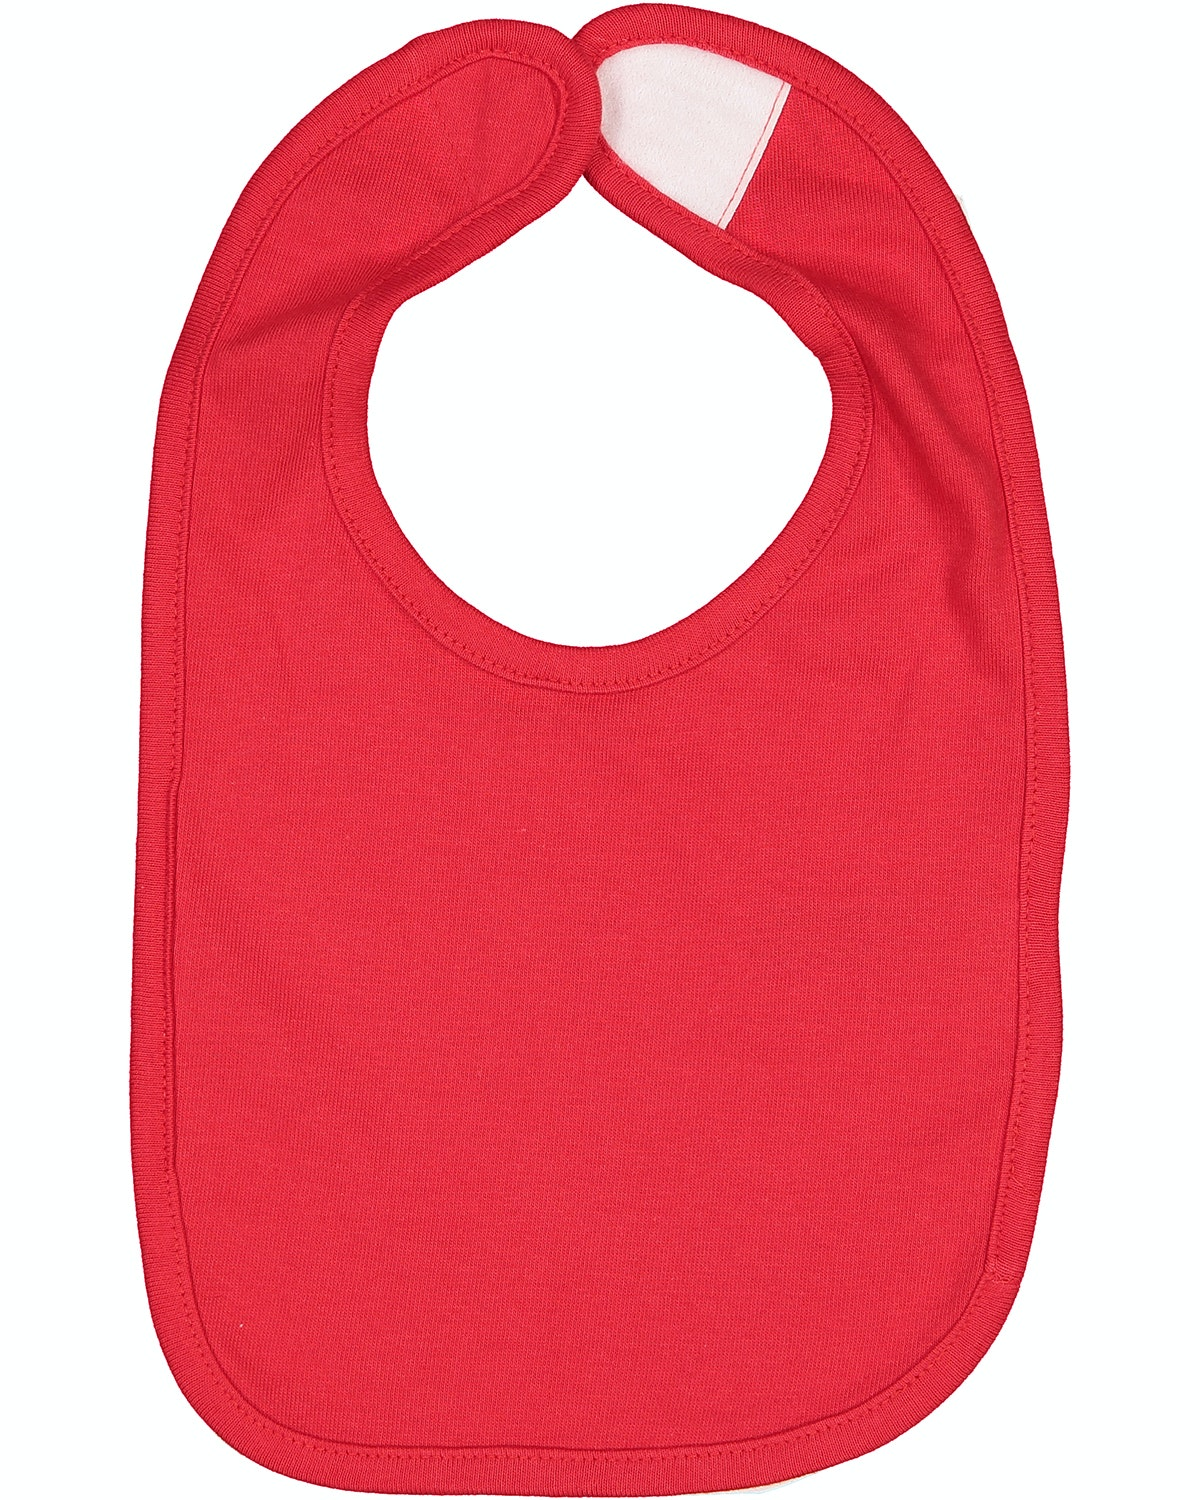 Rabbit Skins RS1005 Red